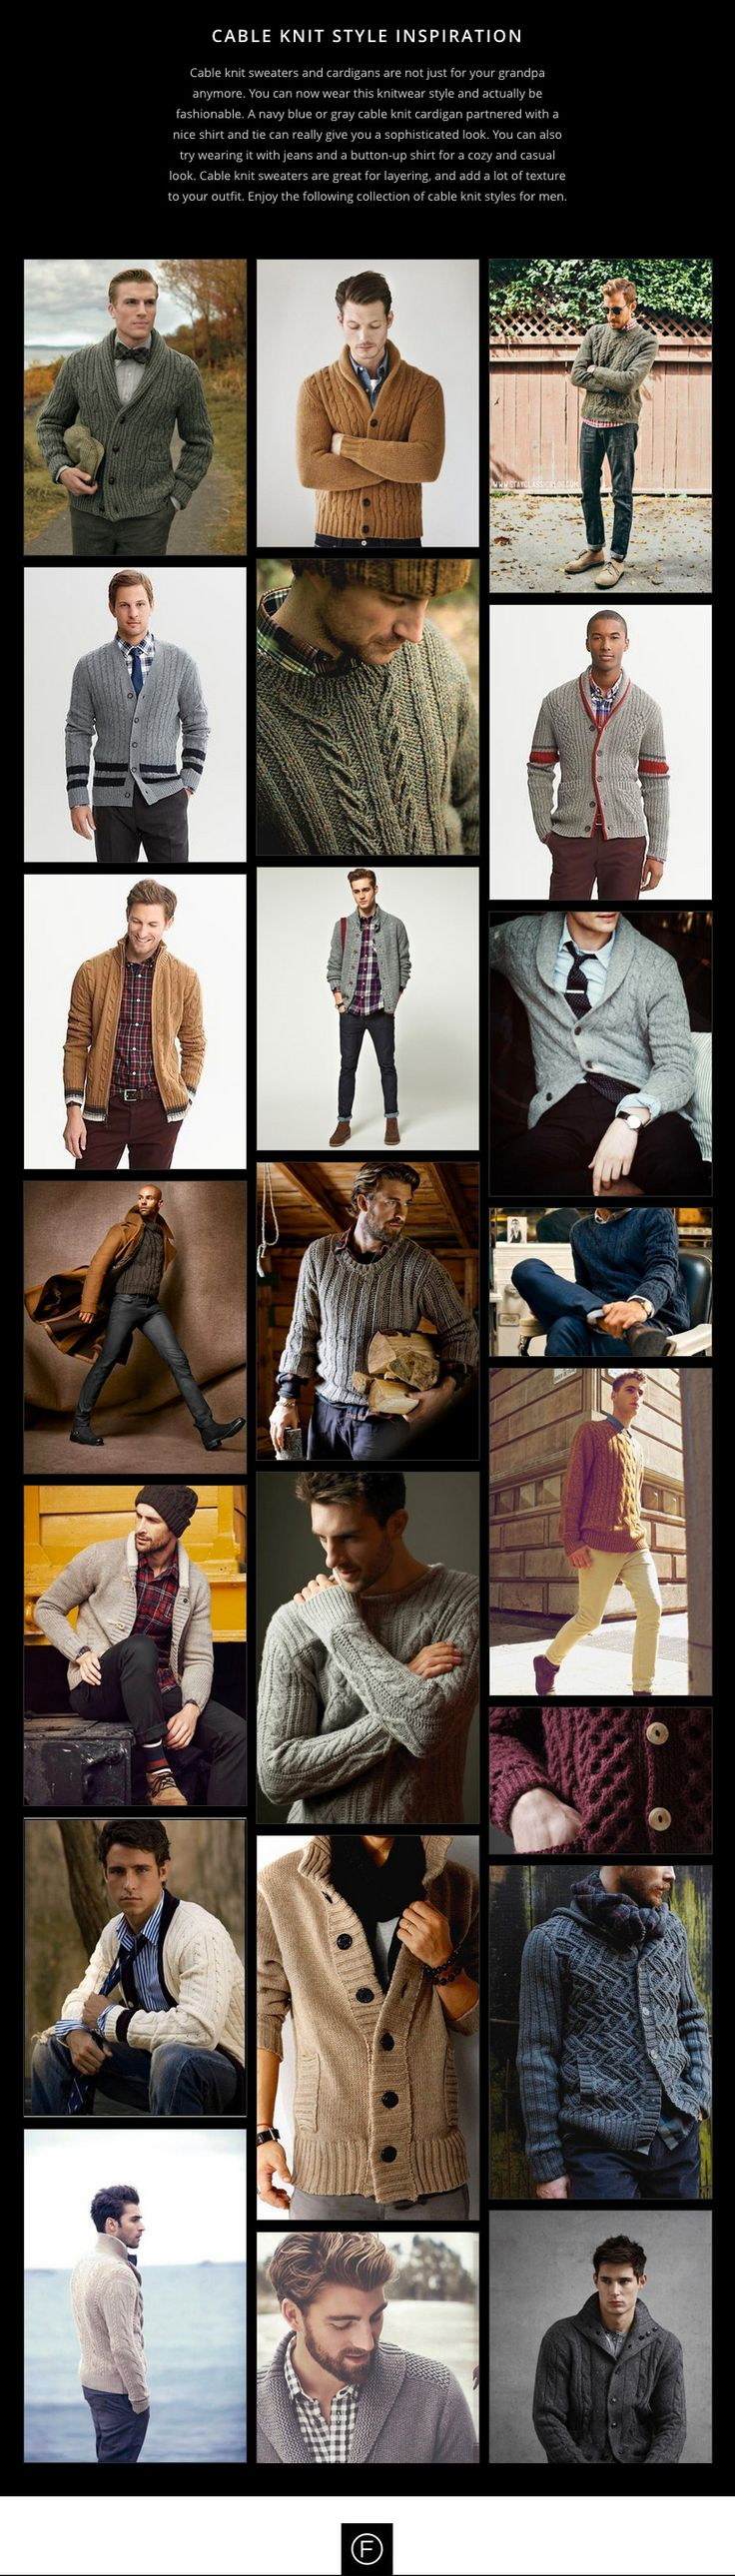 Cable knit sweaters and cardigans are not just for your grandpa anymore.  http://famousoutfits.com/collections/cable-knit-style-inspiration/ #mensfashion #cableknit